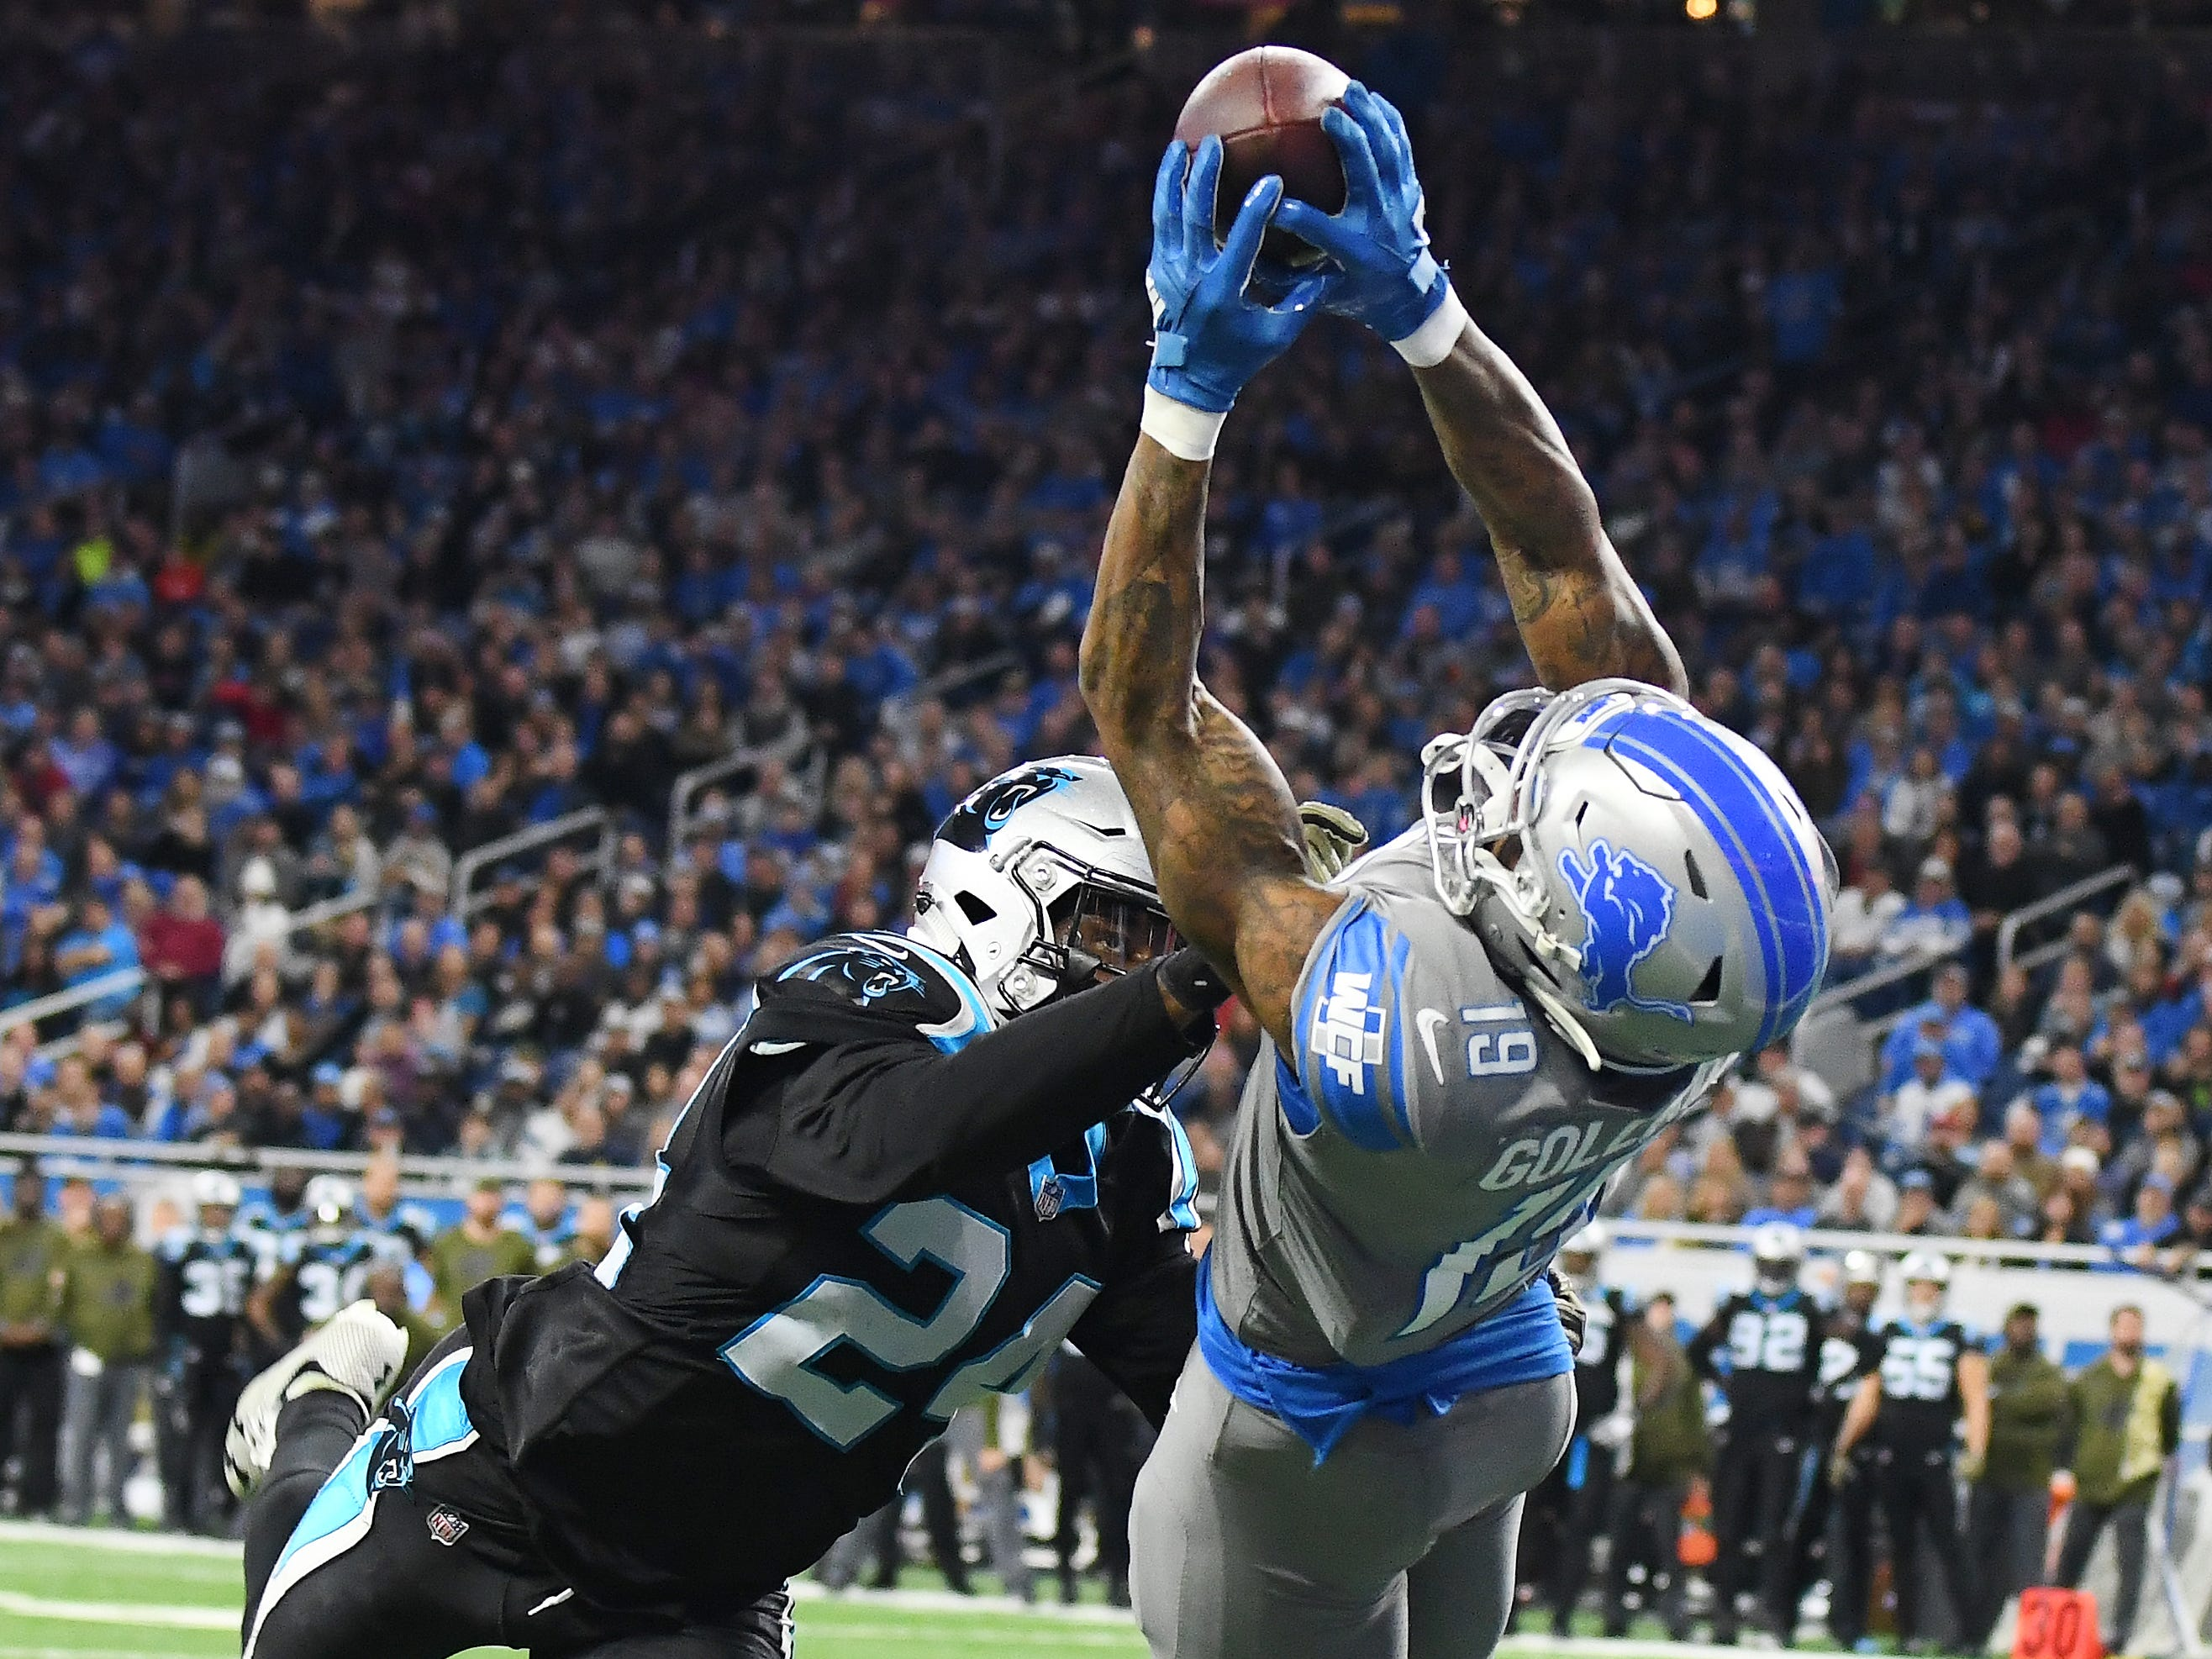 Lions wide receiver Kenny Golladay makes the game winning touchdown catch in front of Carolina Panthers cornerback James Bradberry late in the fourth quarter of a 20-19 victory at Ford Field in Detroit on November 18, 2018.